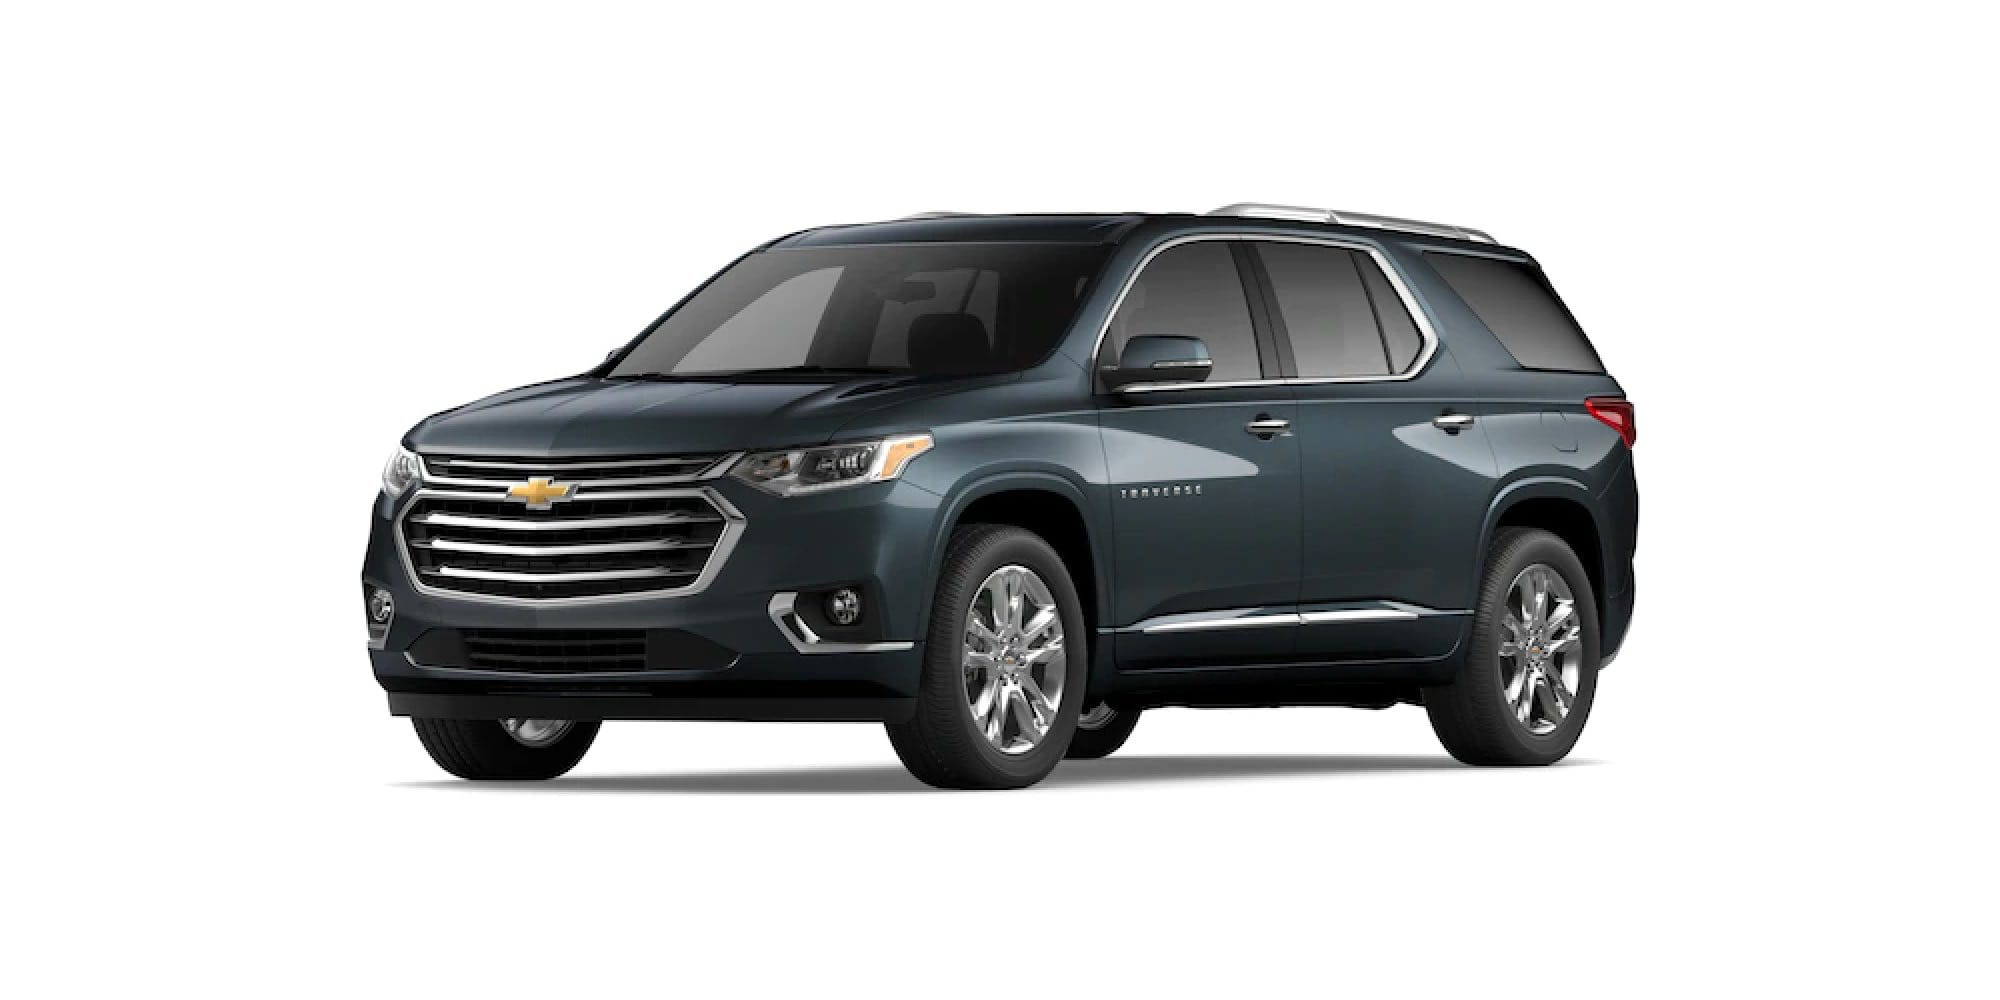 2021 Chevy Traverse in Graphite Metallic